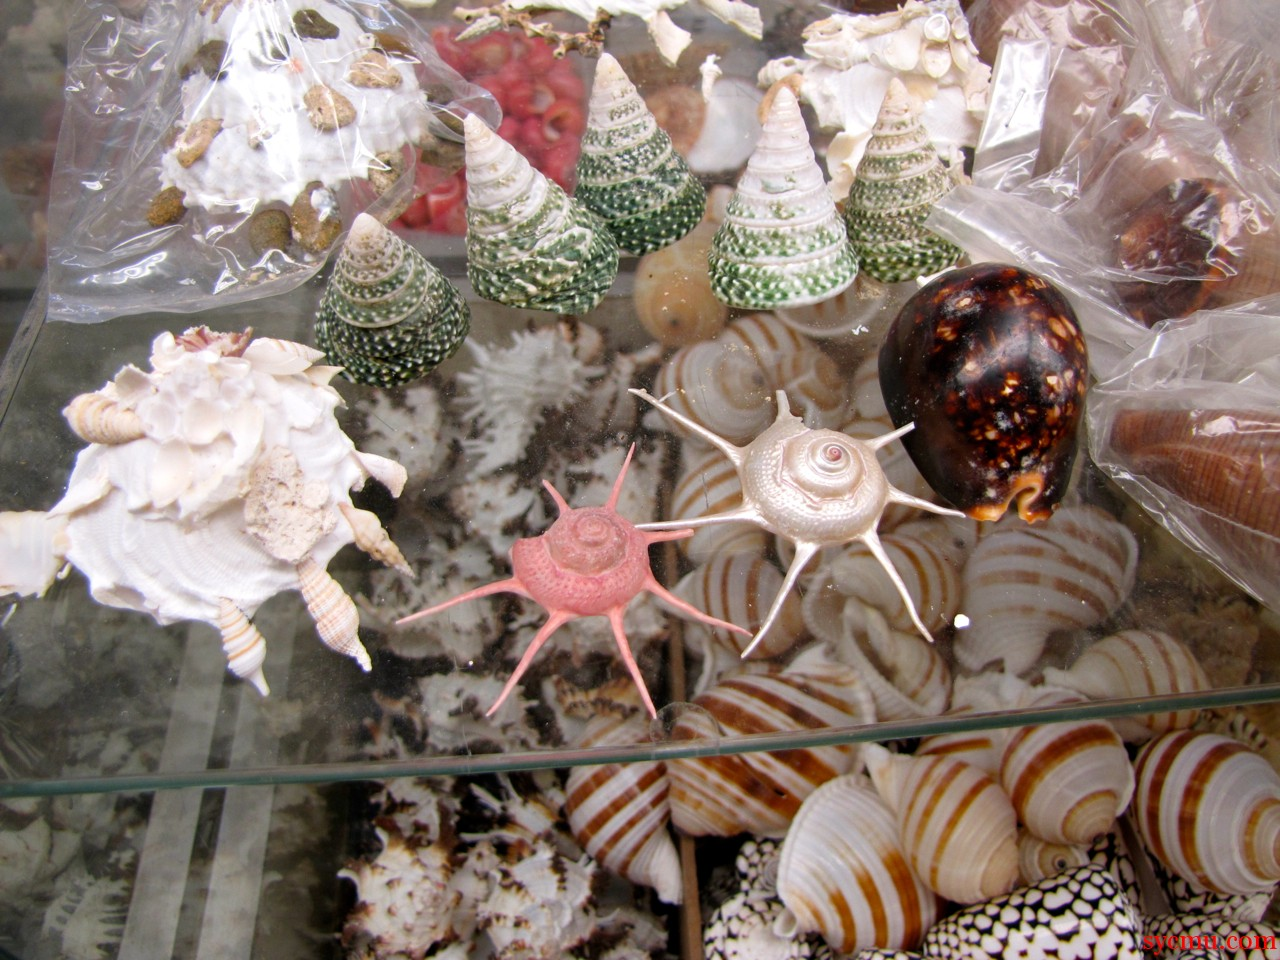 Sanibel Island Ind - assorted shells for sale